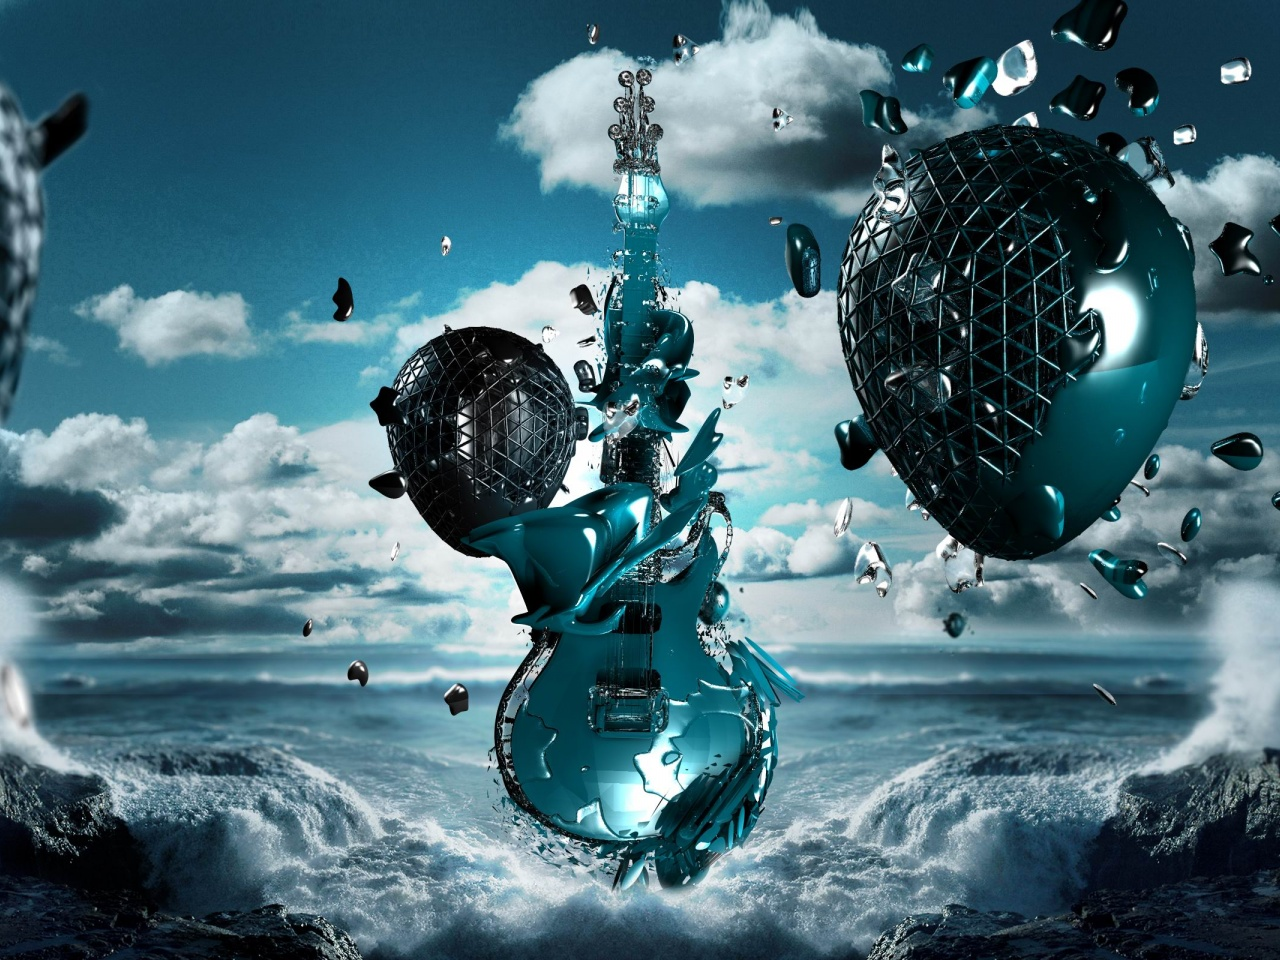 3D Guitar Sea Space Creativity